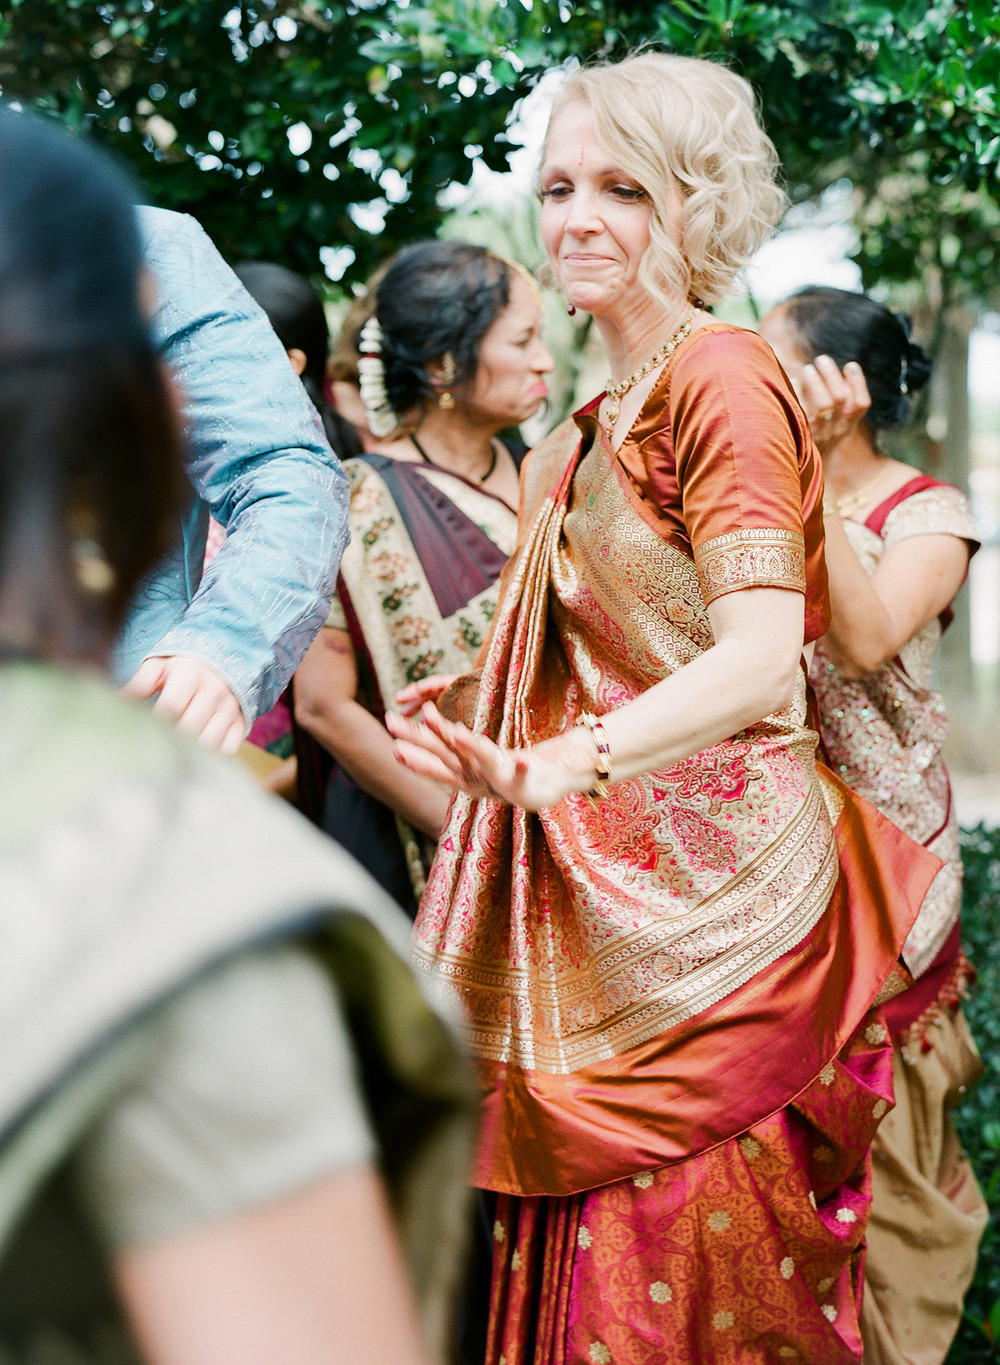 The groom's mother dances during this Indian Wedding in Florida photographed by Destination Wedding Photographer, LExia Frank - a top indian wedding photographer - who shoots film for luxury indian weddings preferring the soft skin tones and vibrant colors for indian weddings in india and worldwide